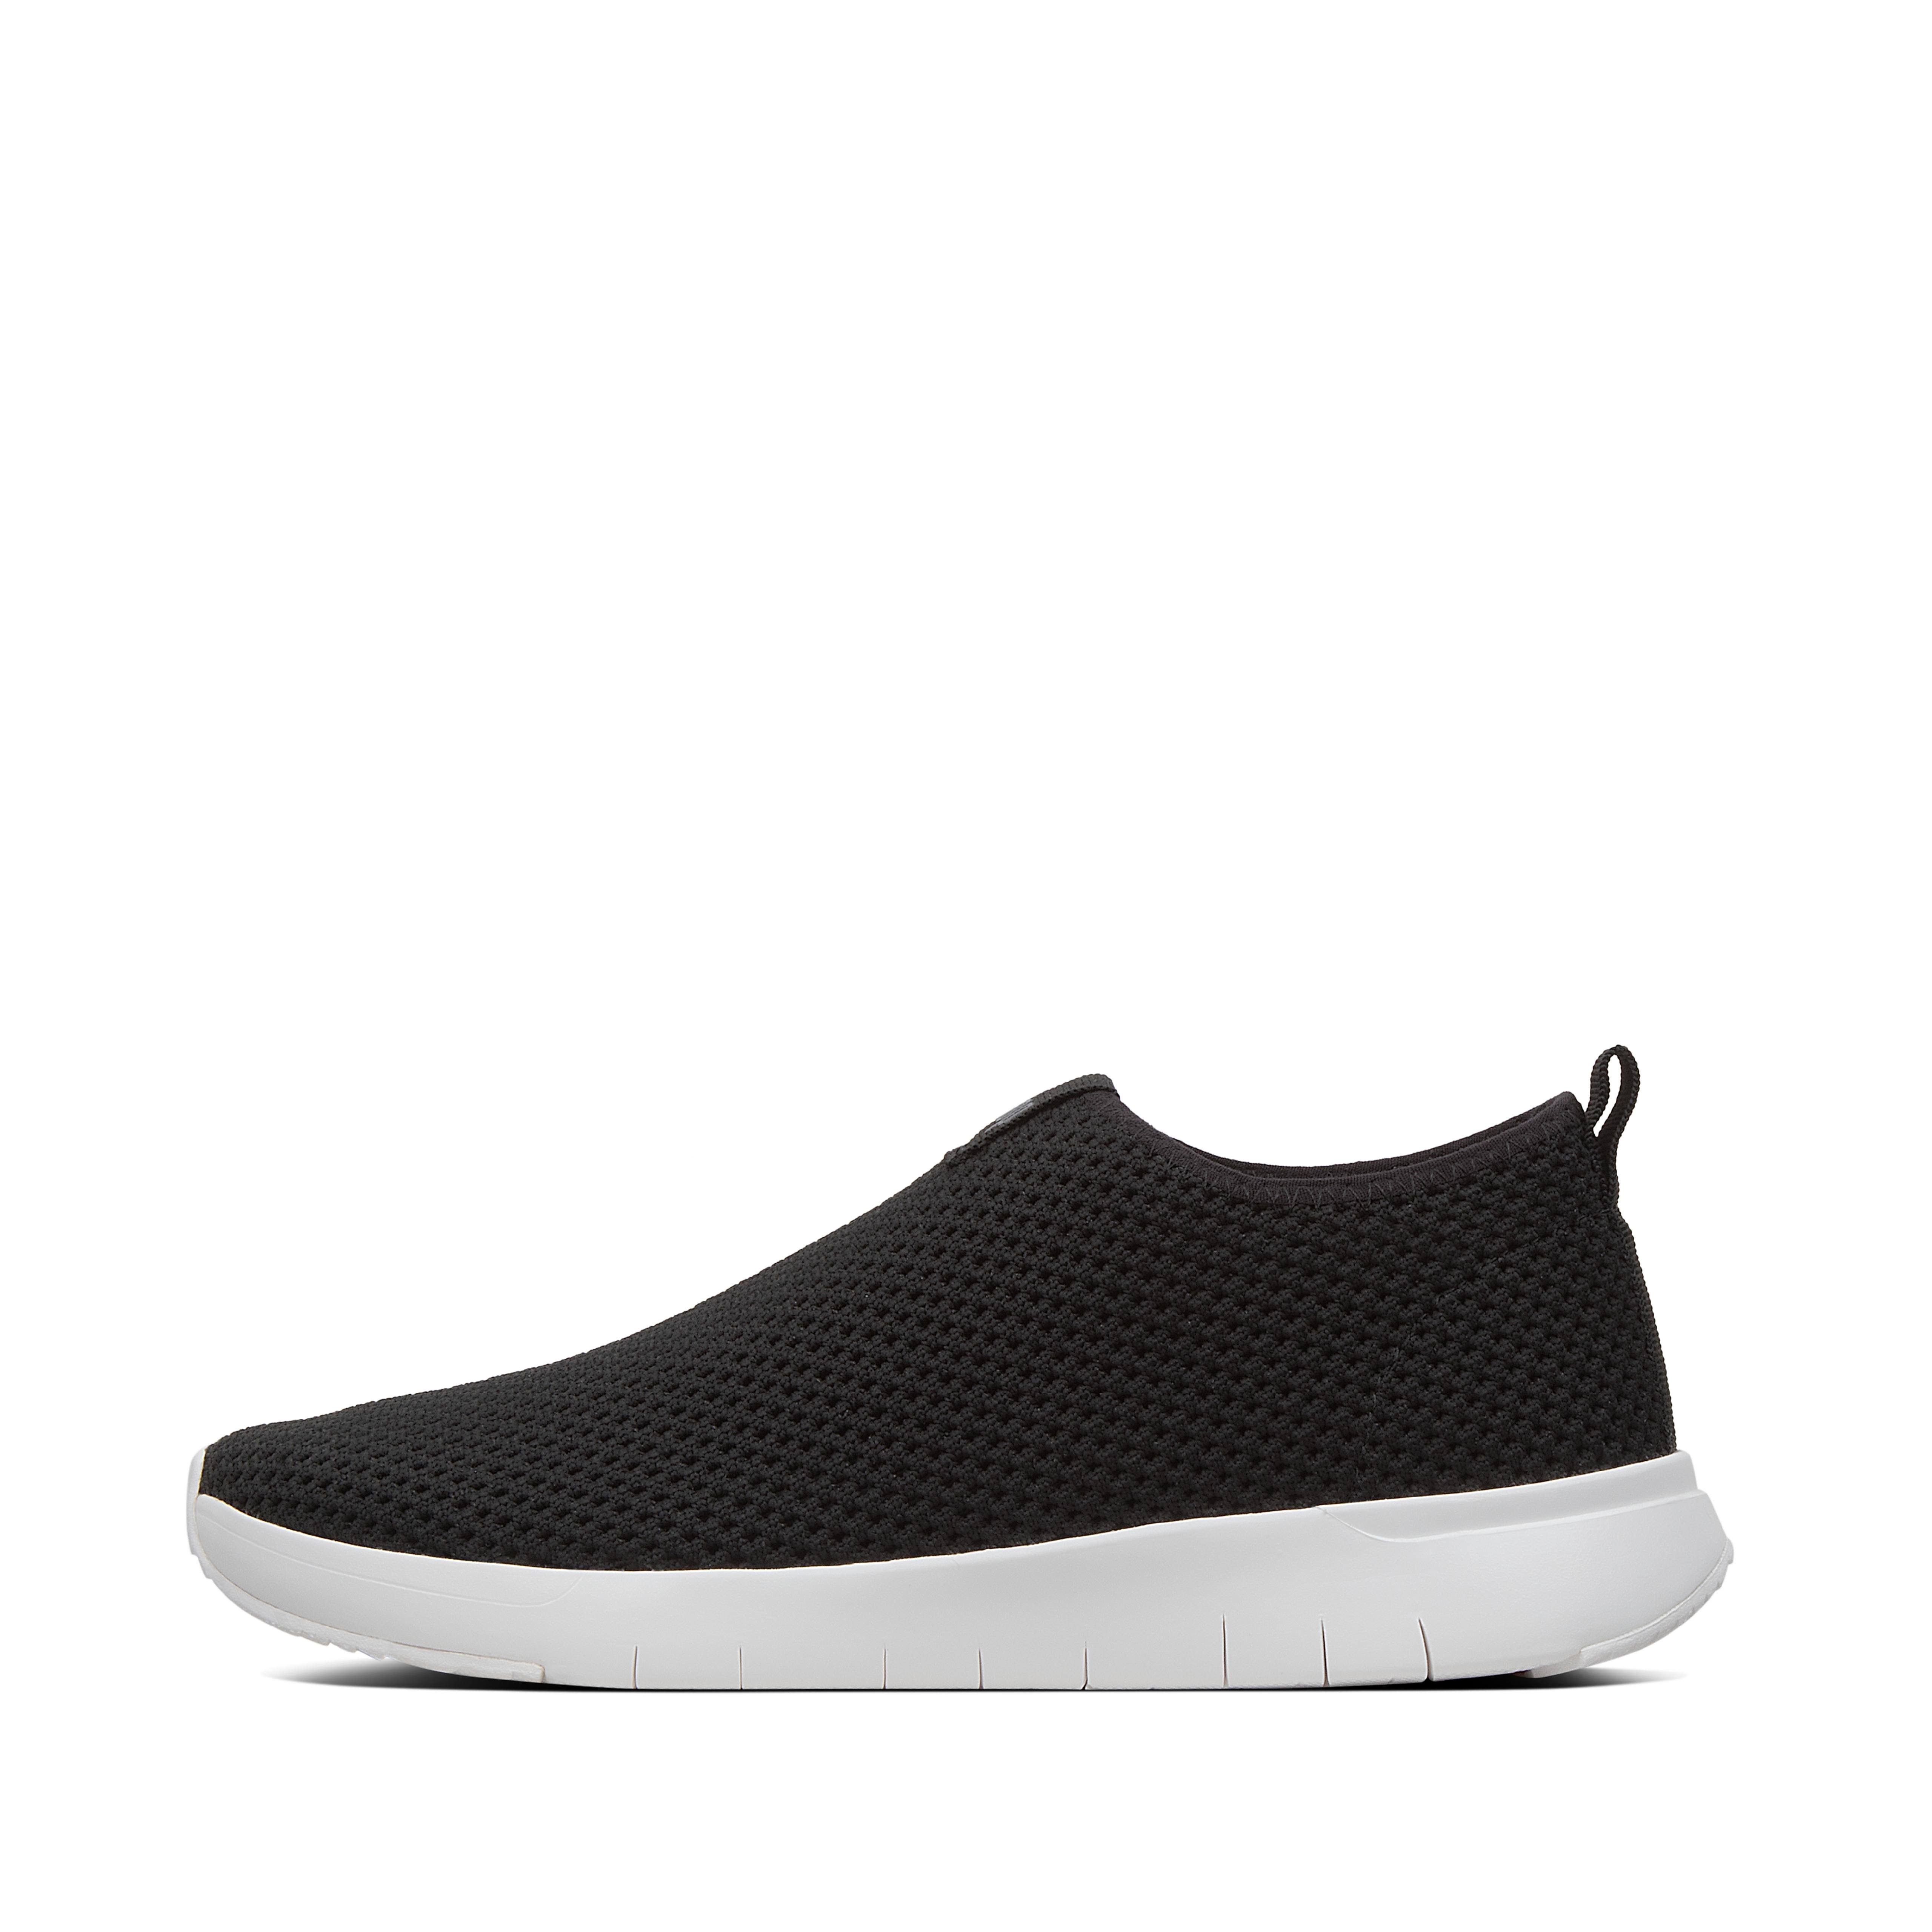 FitFlop Airmesh Slip-On Trainers, Black